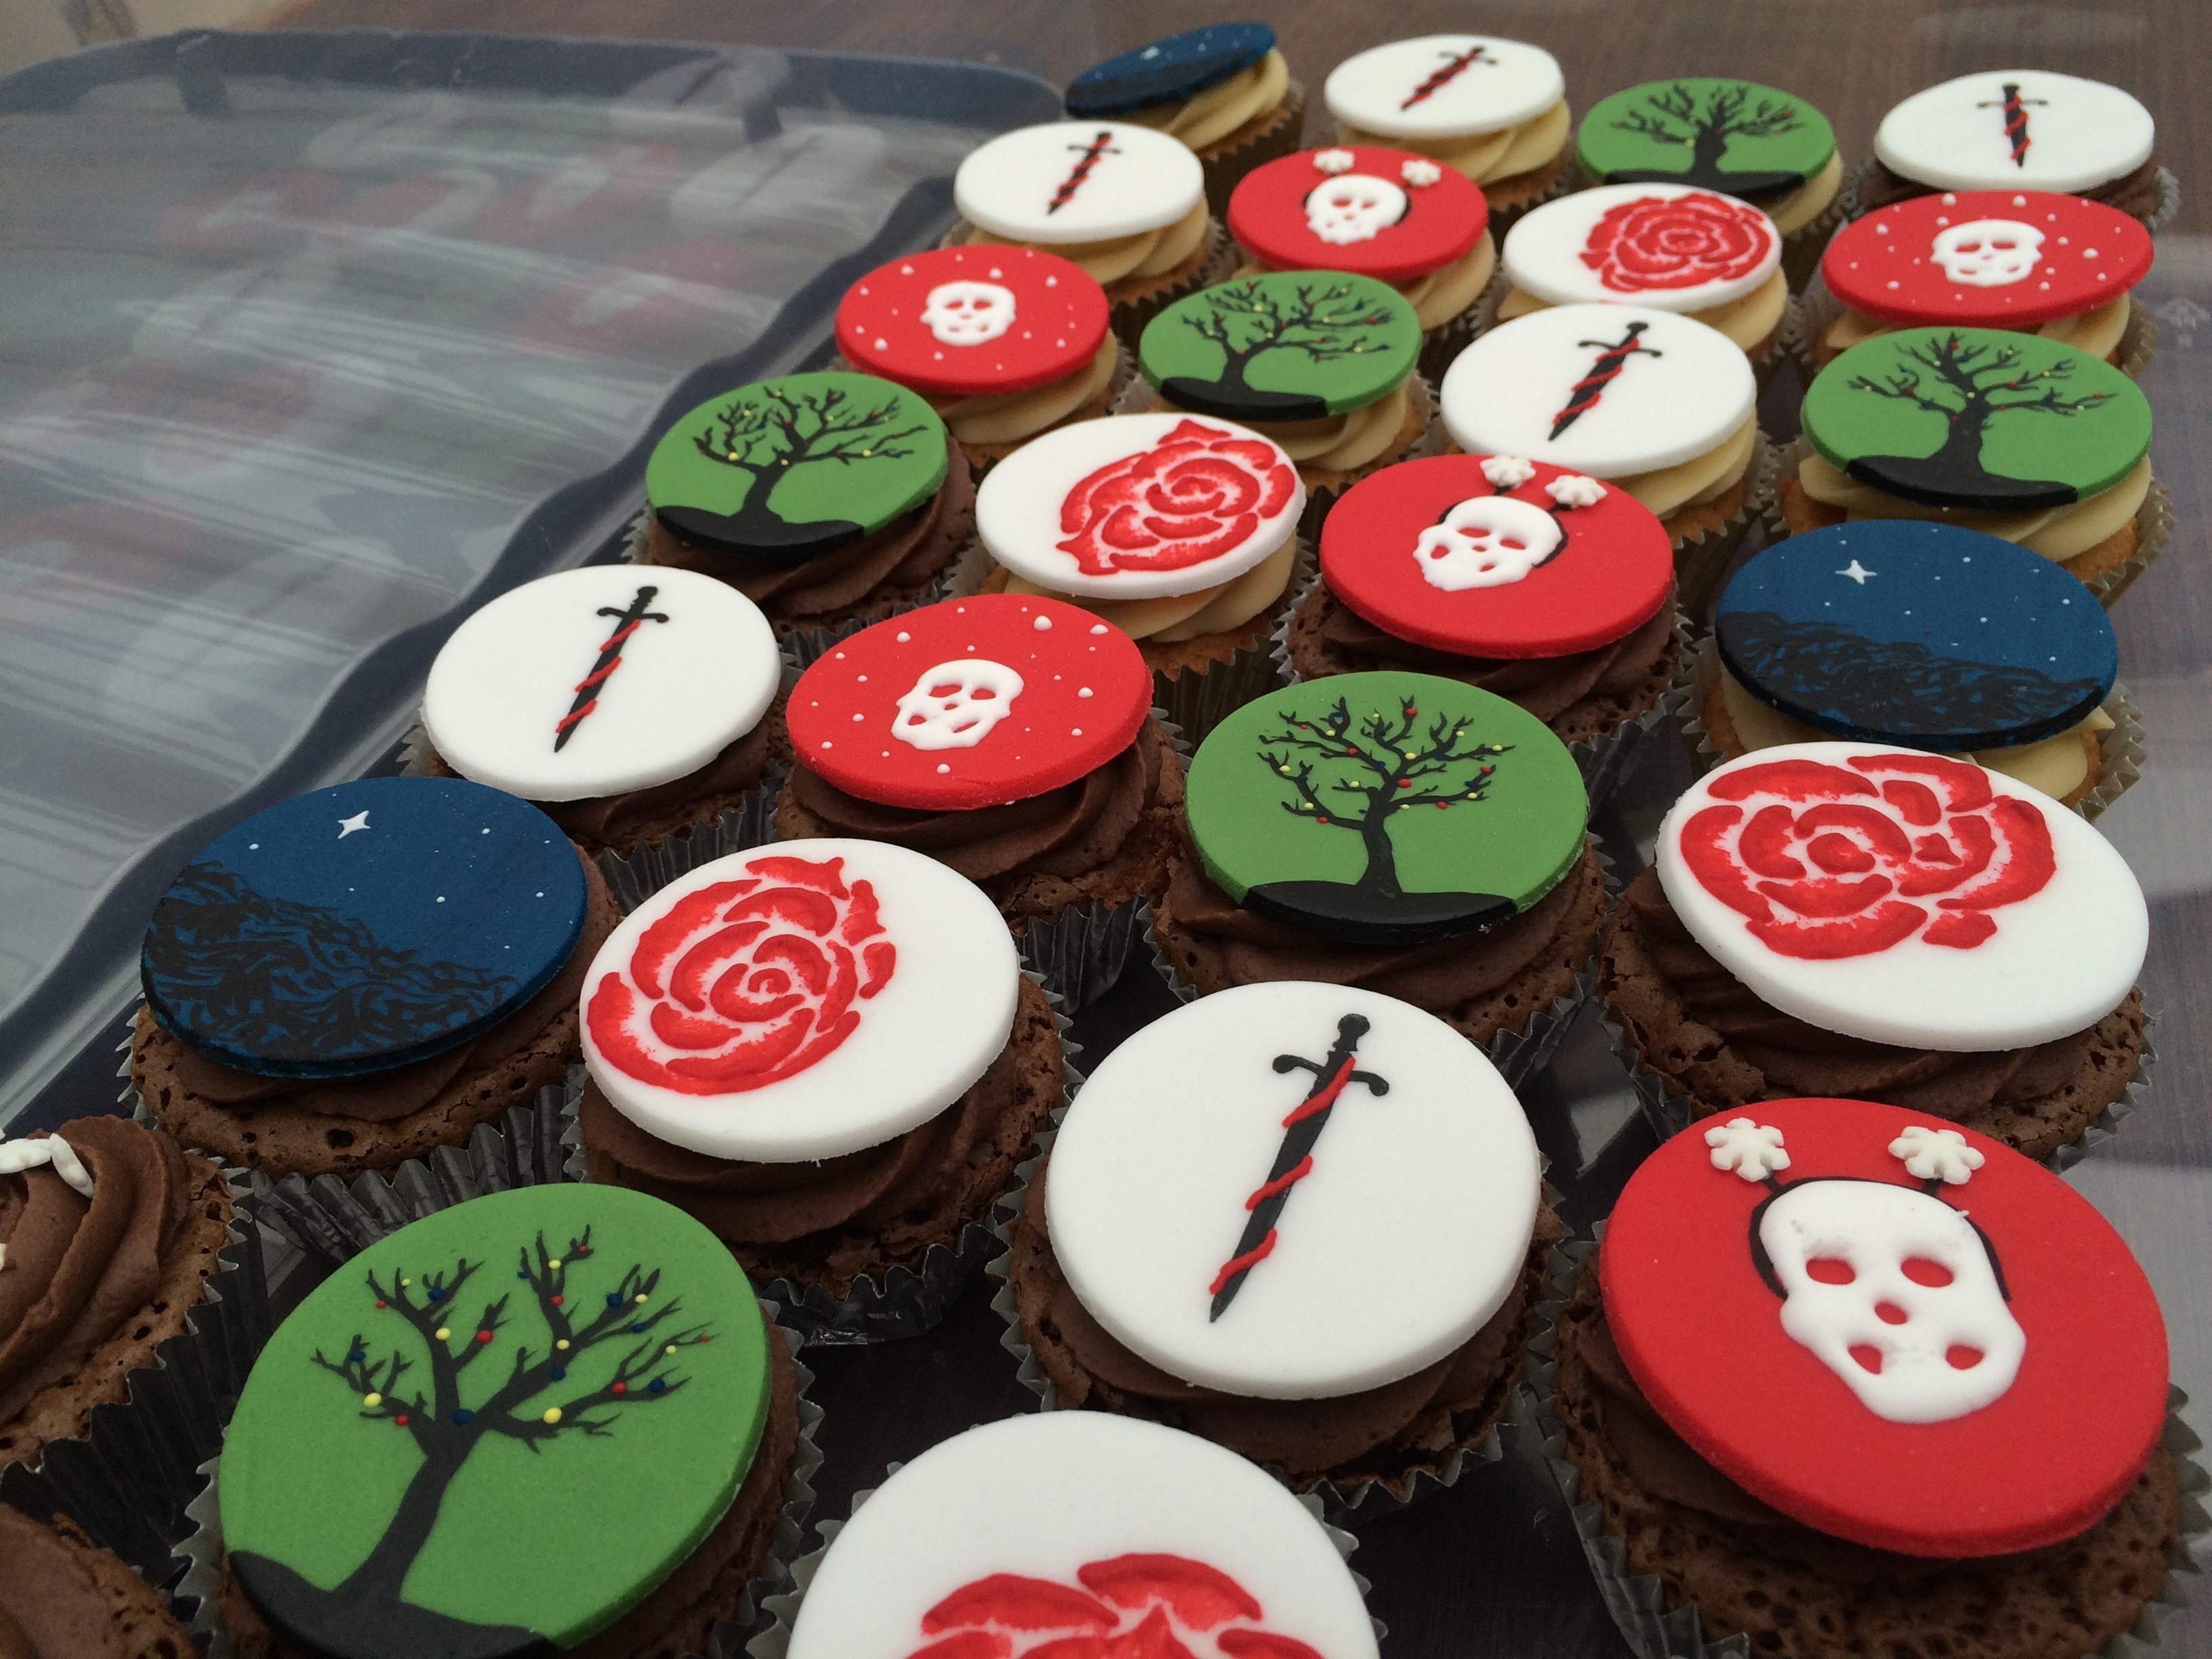 Festive Shakespeare Cupcakes Chocolate and gingerbread cupcakes decorated with hand-painted, festive, Shakespeare-themed toppers :). Tree = King Lear,Skull = Hamlet,...